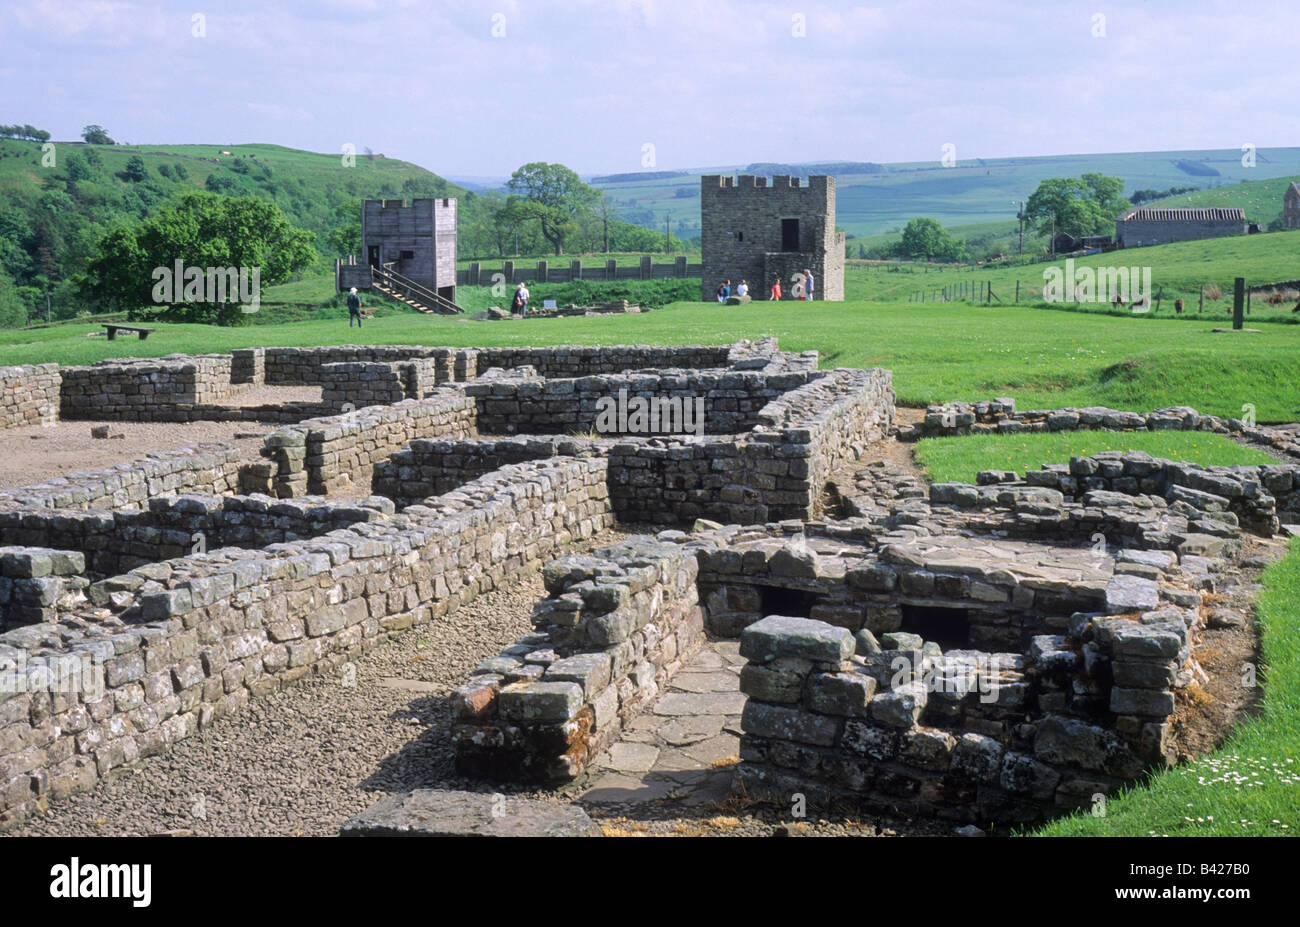 Vindolanda Roman archaeological Site Northumberland Hadrians Wall English archaeology ruins walls camp England UK - Stock Image